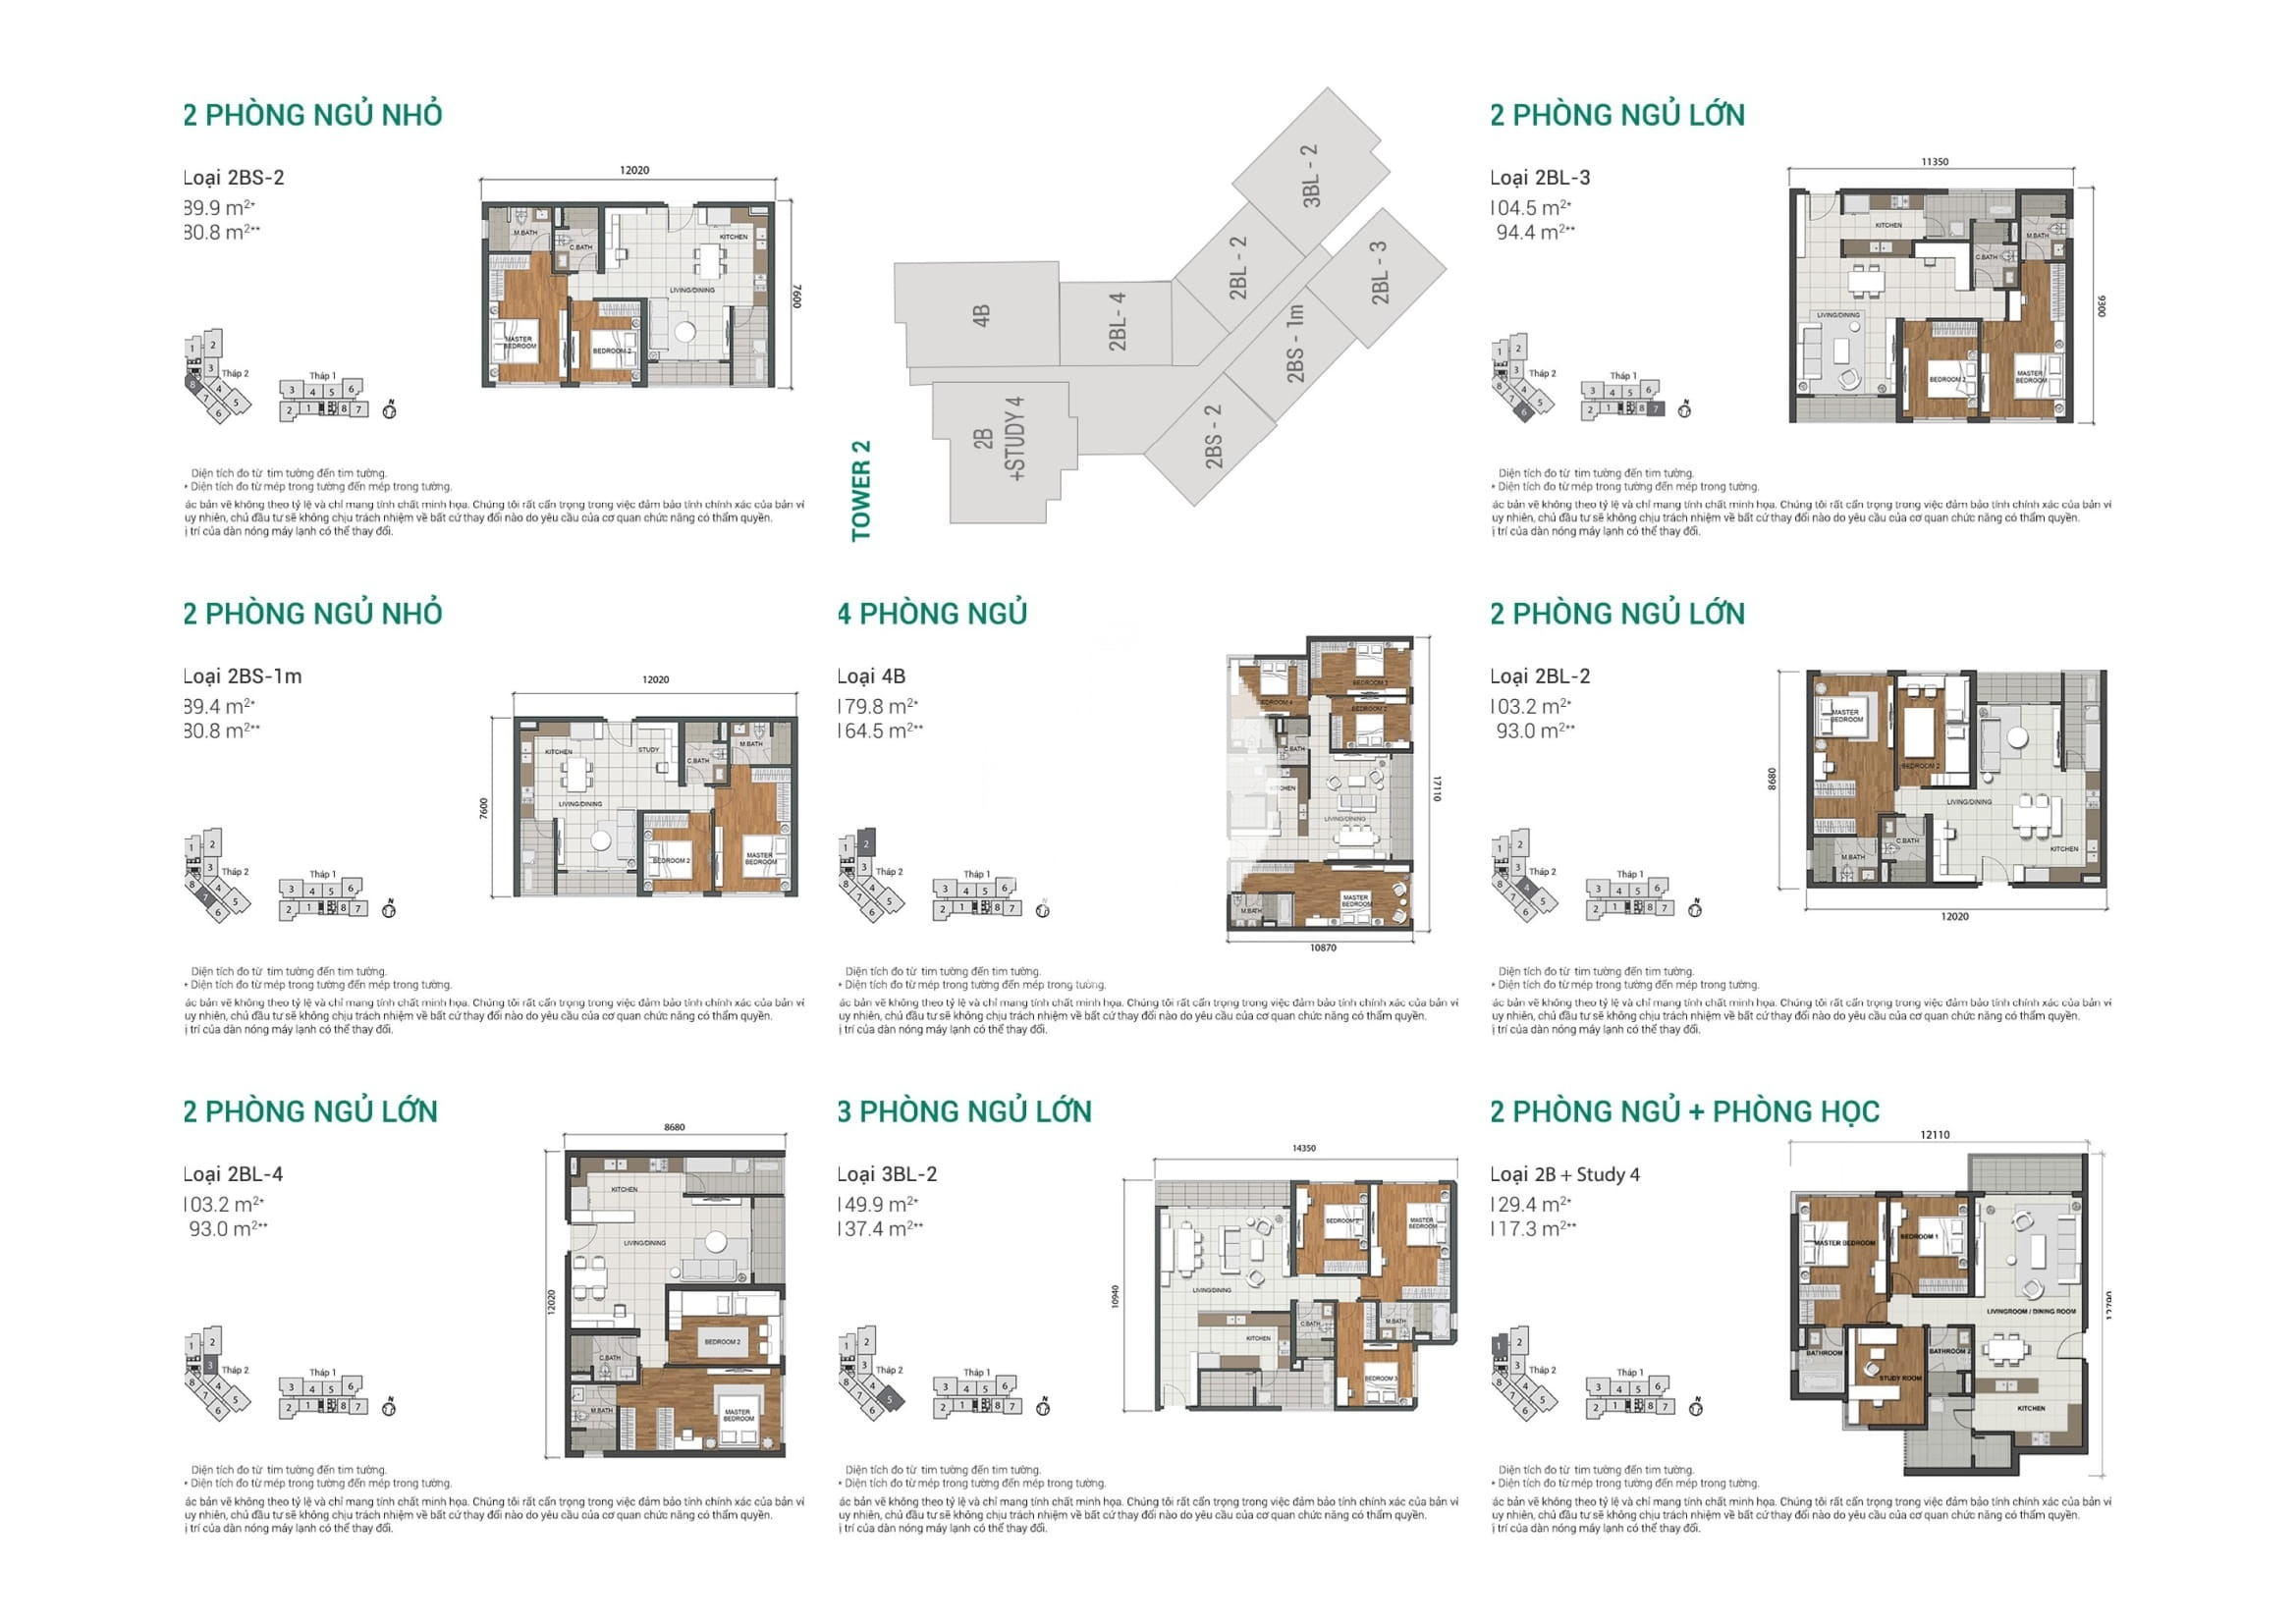 Layout of Tower 2 in Estella Heights apartment